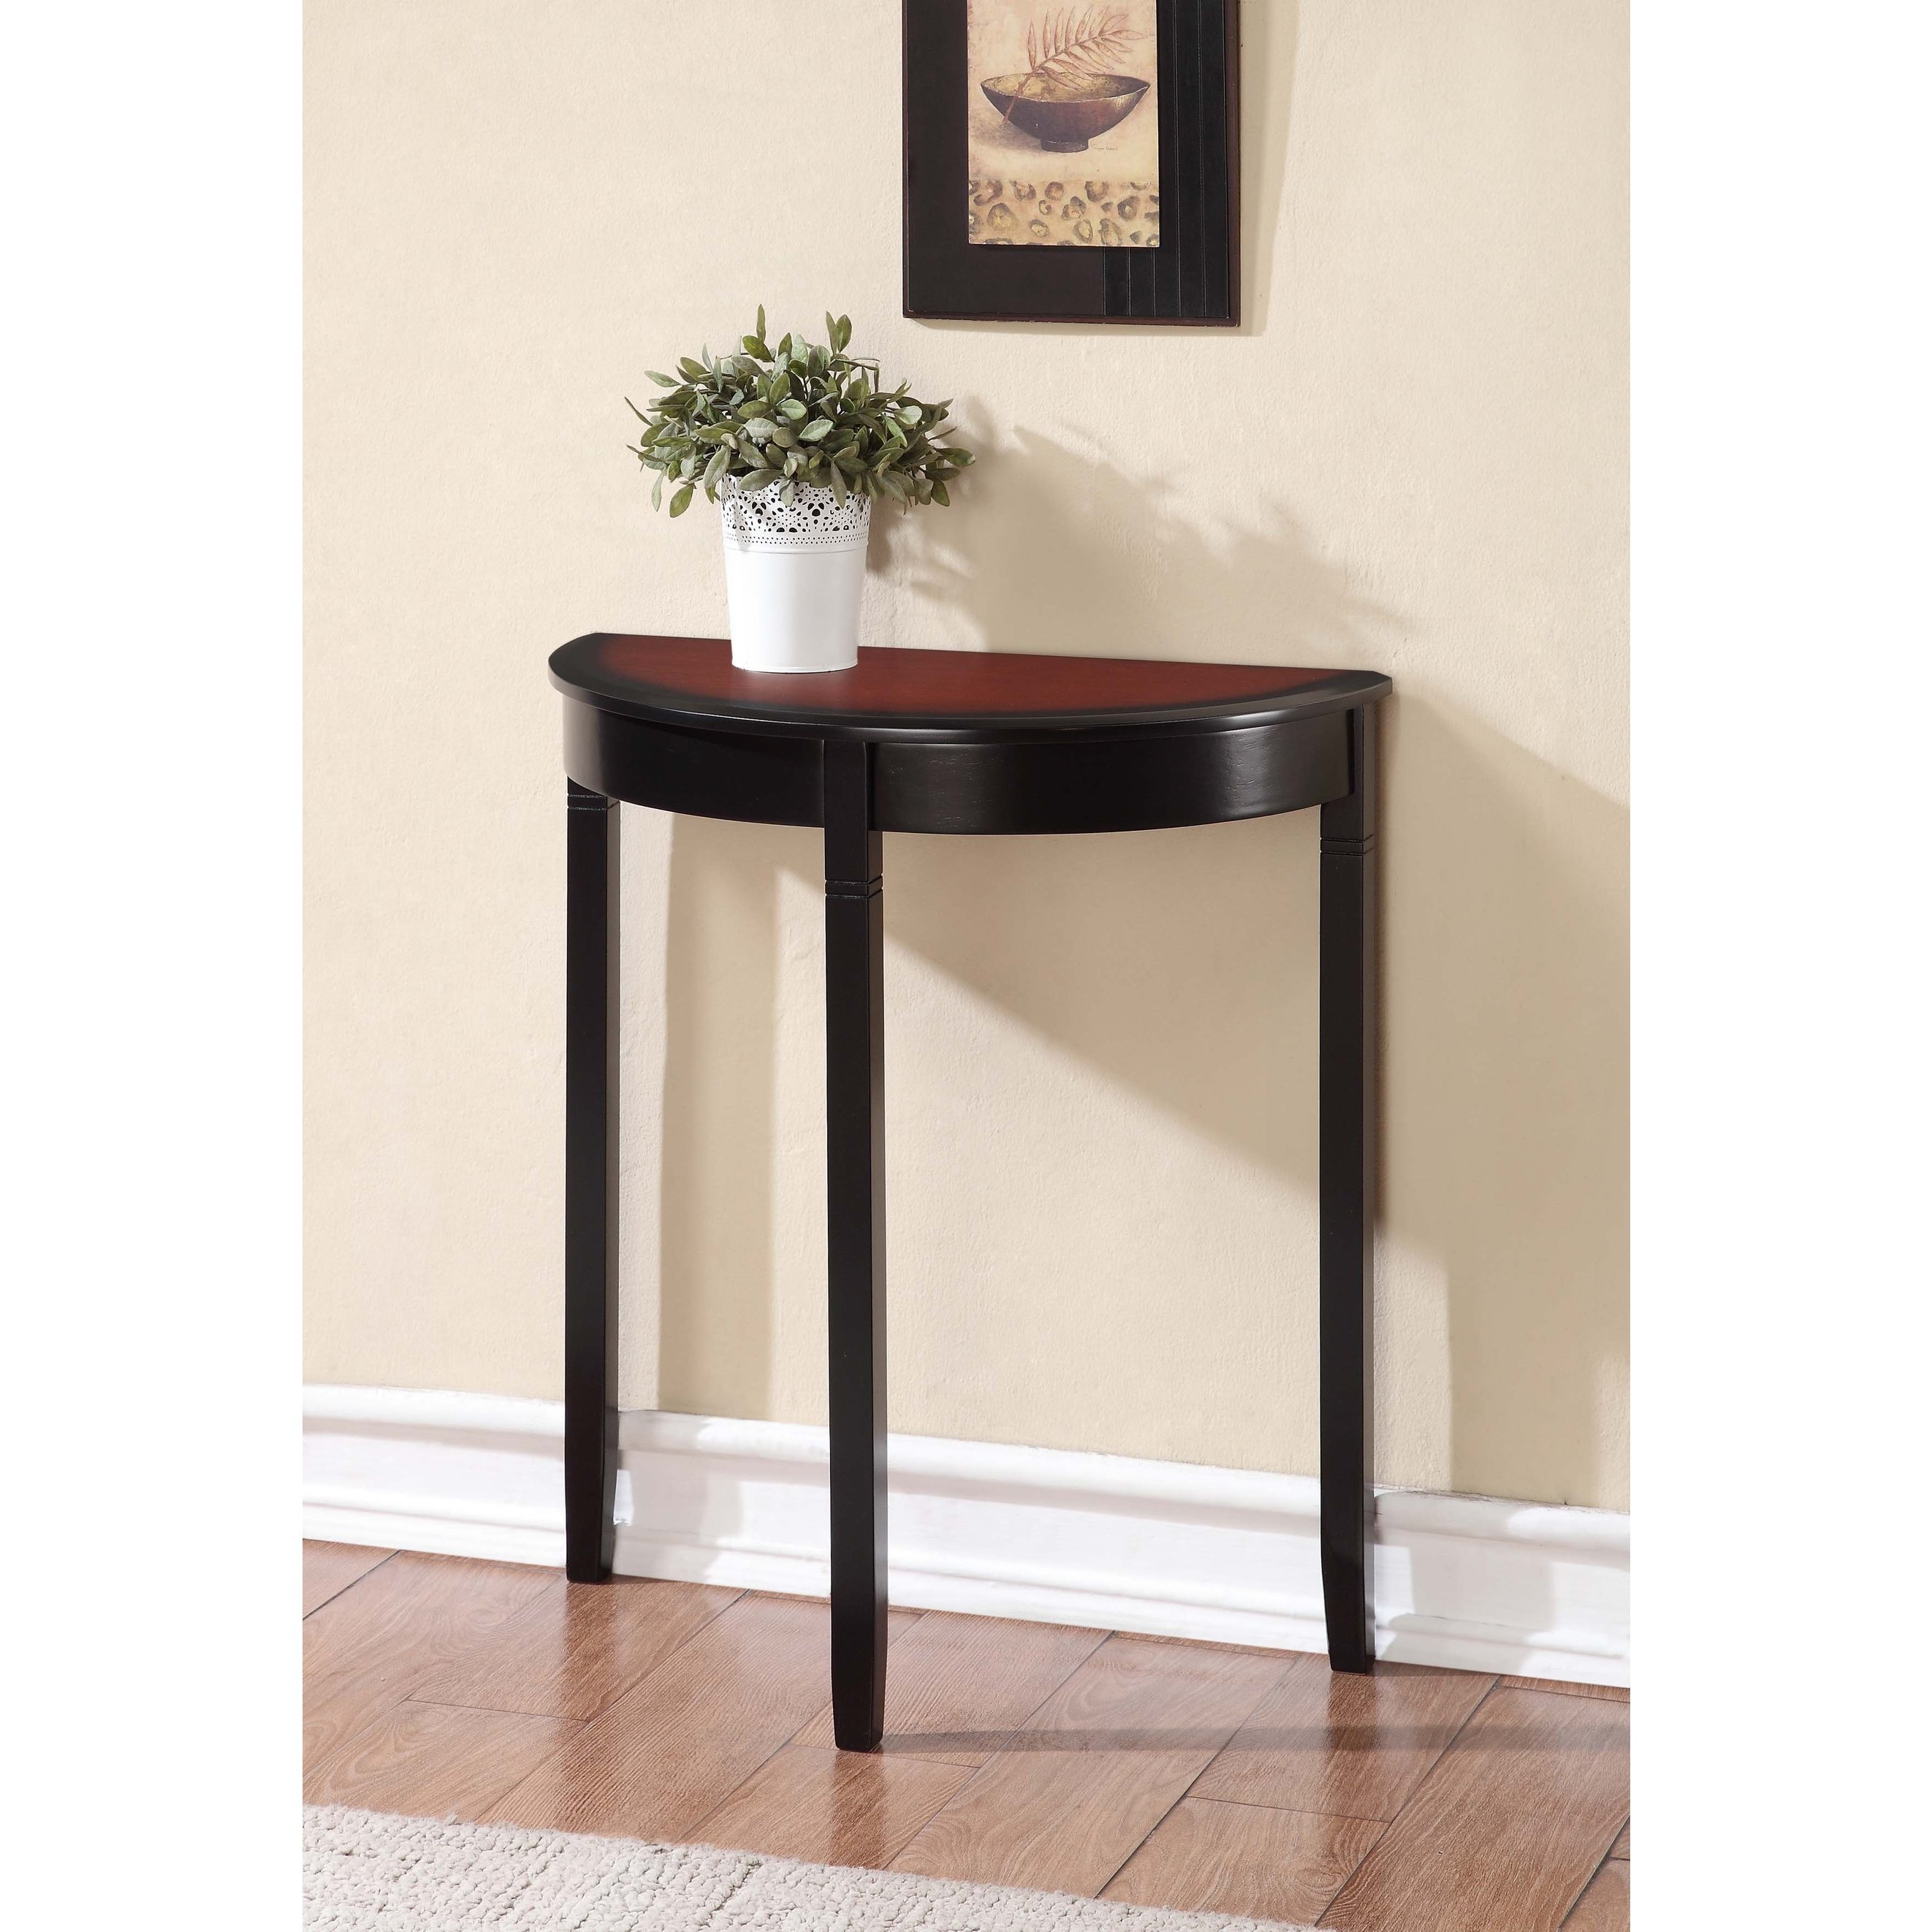 furniture small cherry wood demilune console table with high legs and painted black color narrow hallway spaces ideas accent tables contemporary acrylic side white end mid century